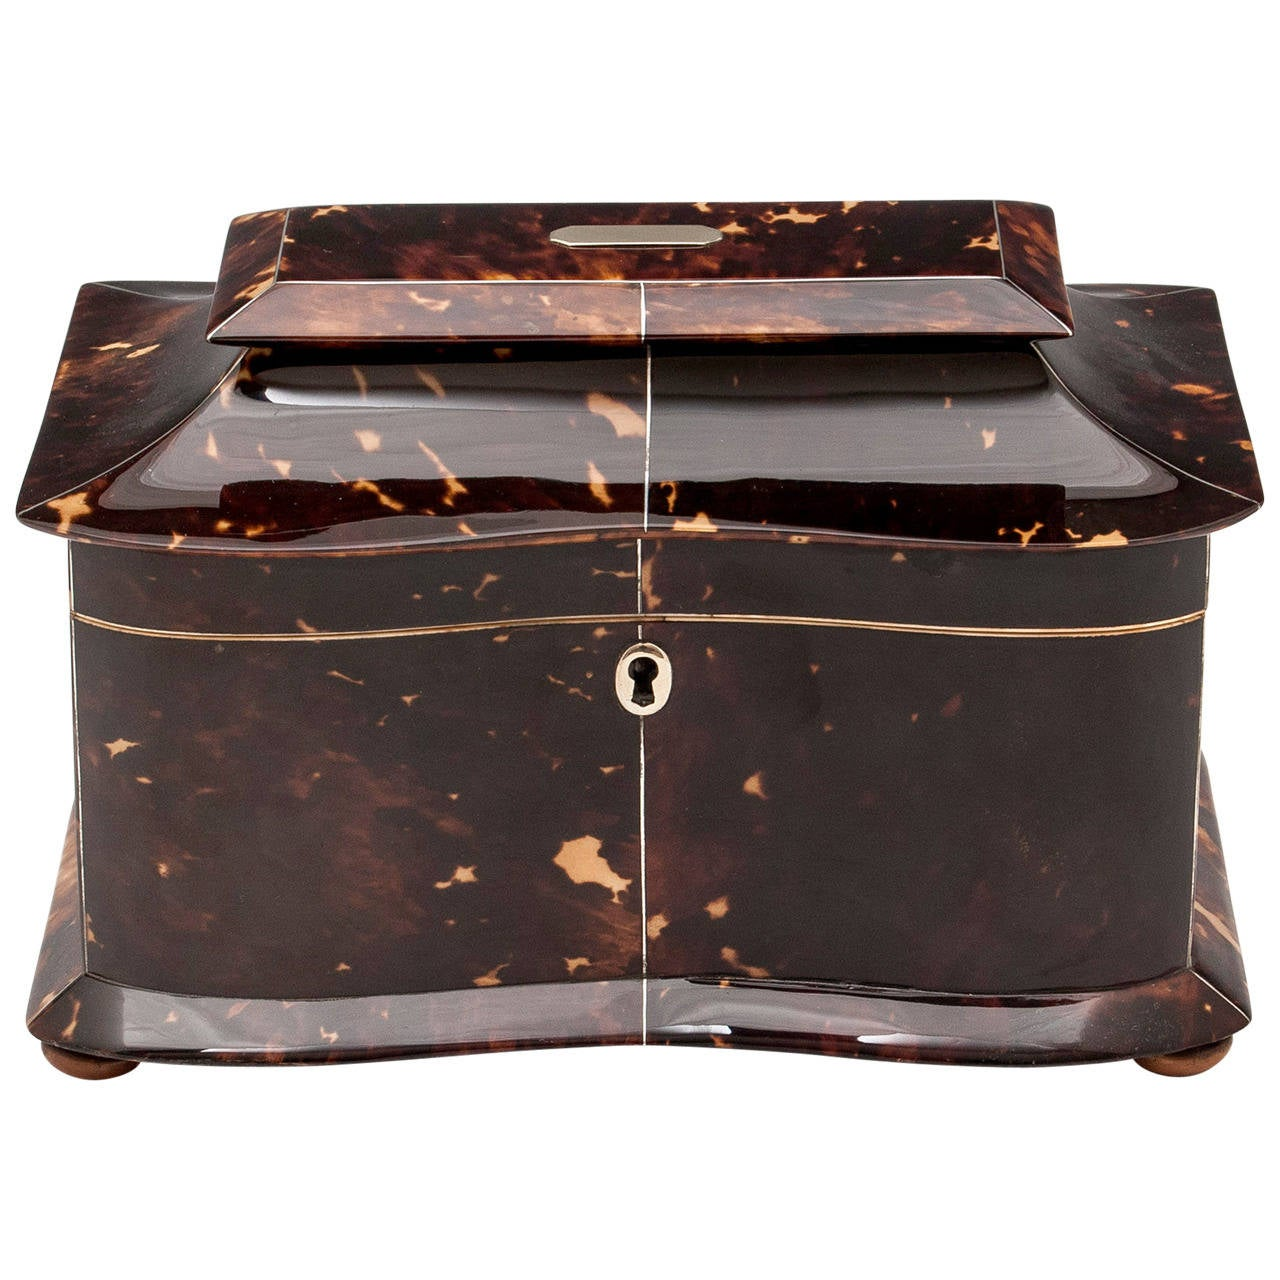 Regency Tortoiseshell Tea Caddy For Sale